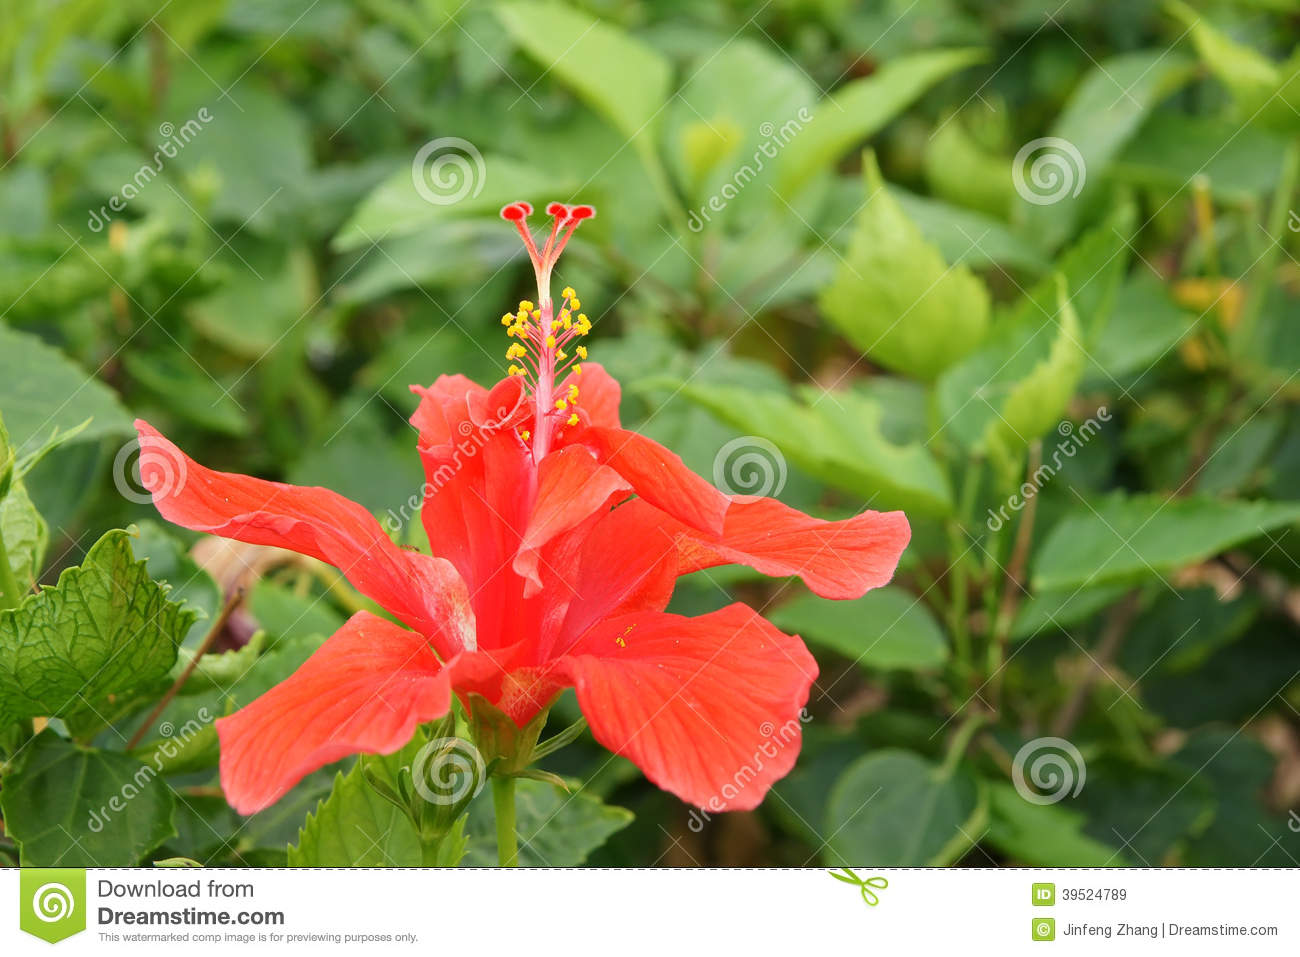 Red jaba flower stock image image of flowers plant 39524789 royalty free stock photo izmirmasajfo Image collections